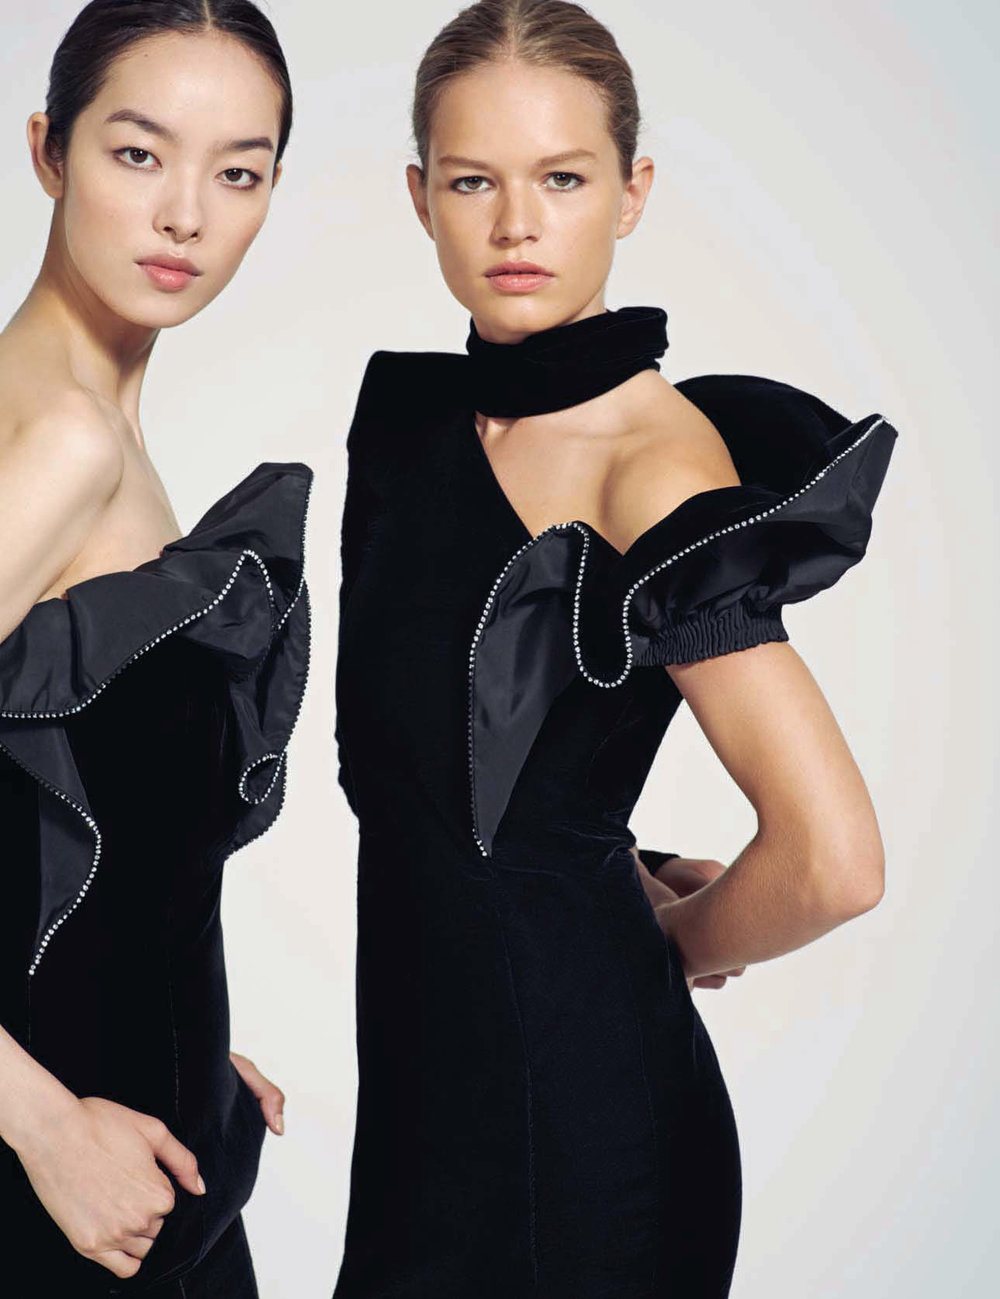 vogue-china-september-2017-anna-ewers-fei-fei-sun-by-collier-schorr-01.jpg